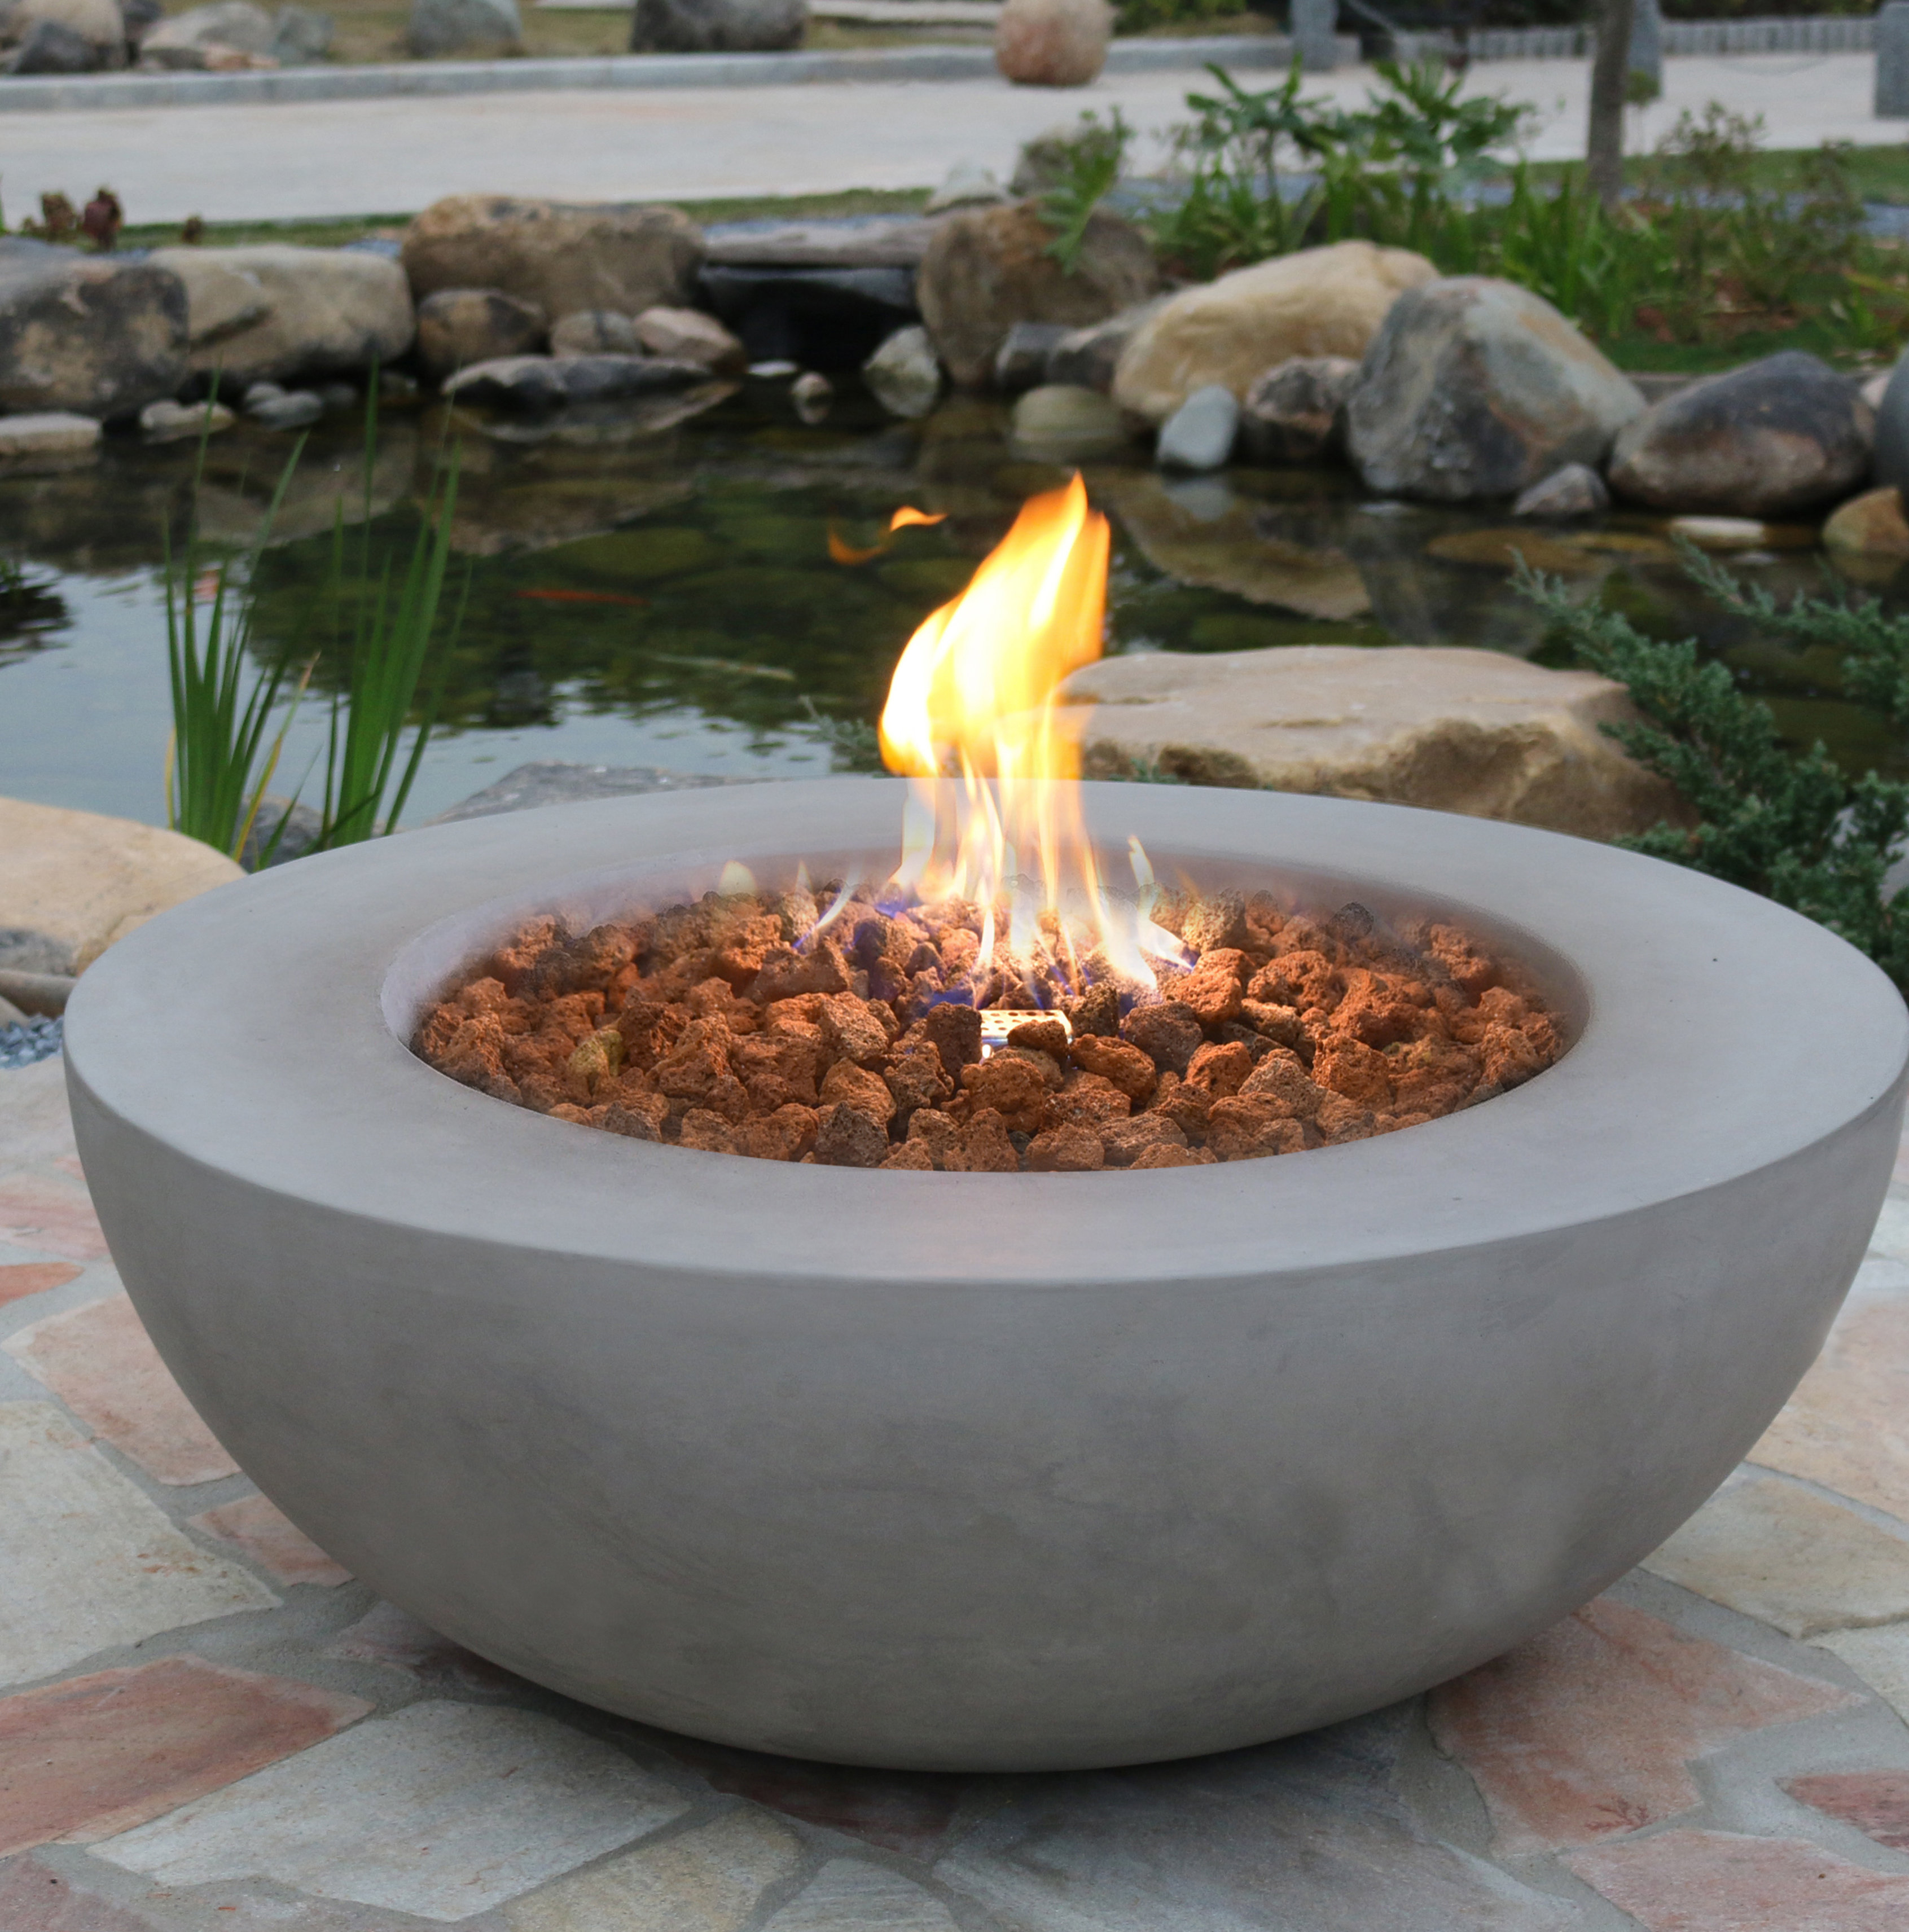 Elementi Lunar Concrete Fire Pit Reviews Wayfair intended for measurements 3383 X 3424